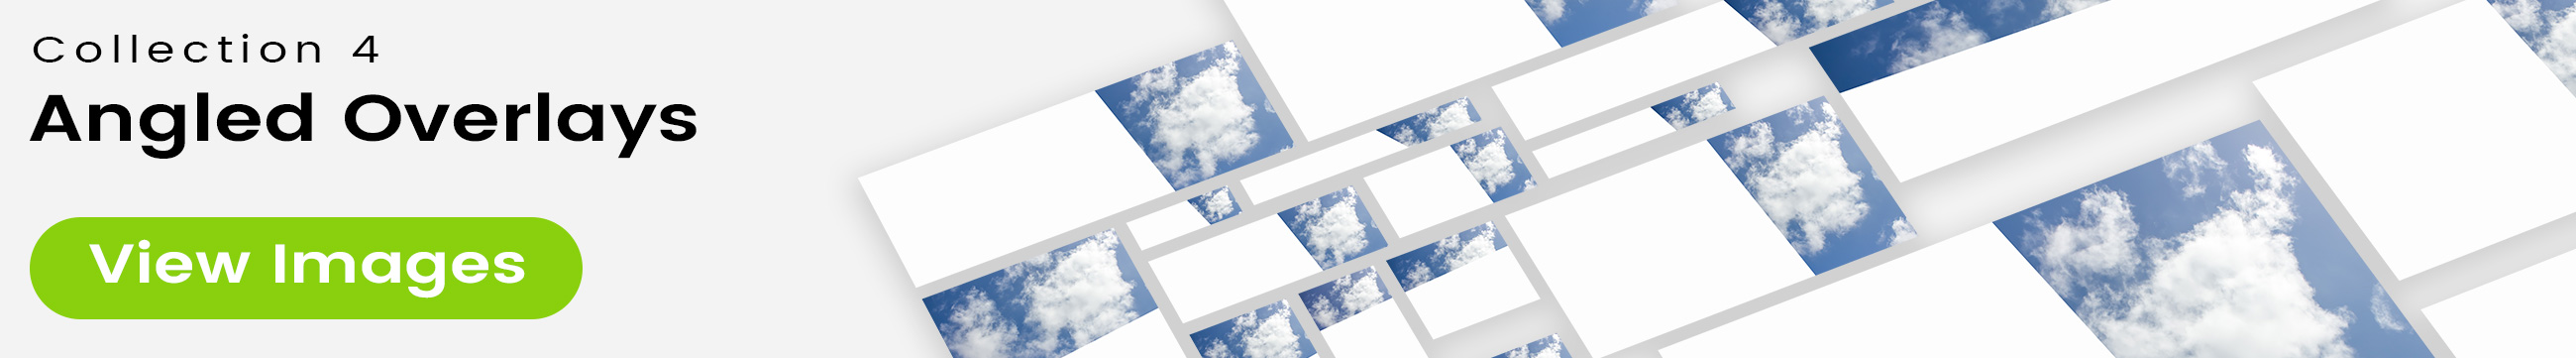 See 25 bonus images included with clouds stock image 9485. Collection 4 of 4 features an angled overlay design customized with a color that complements each photo.